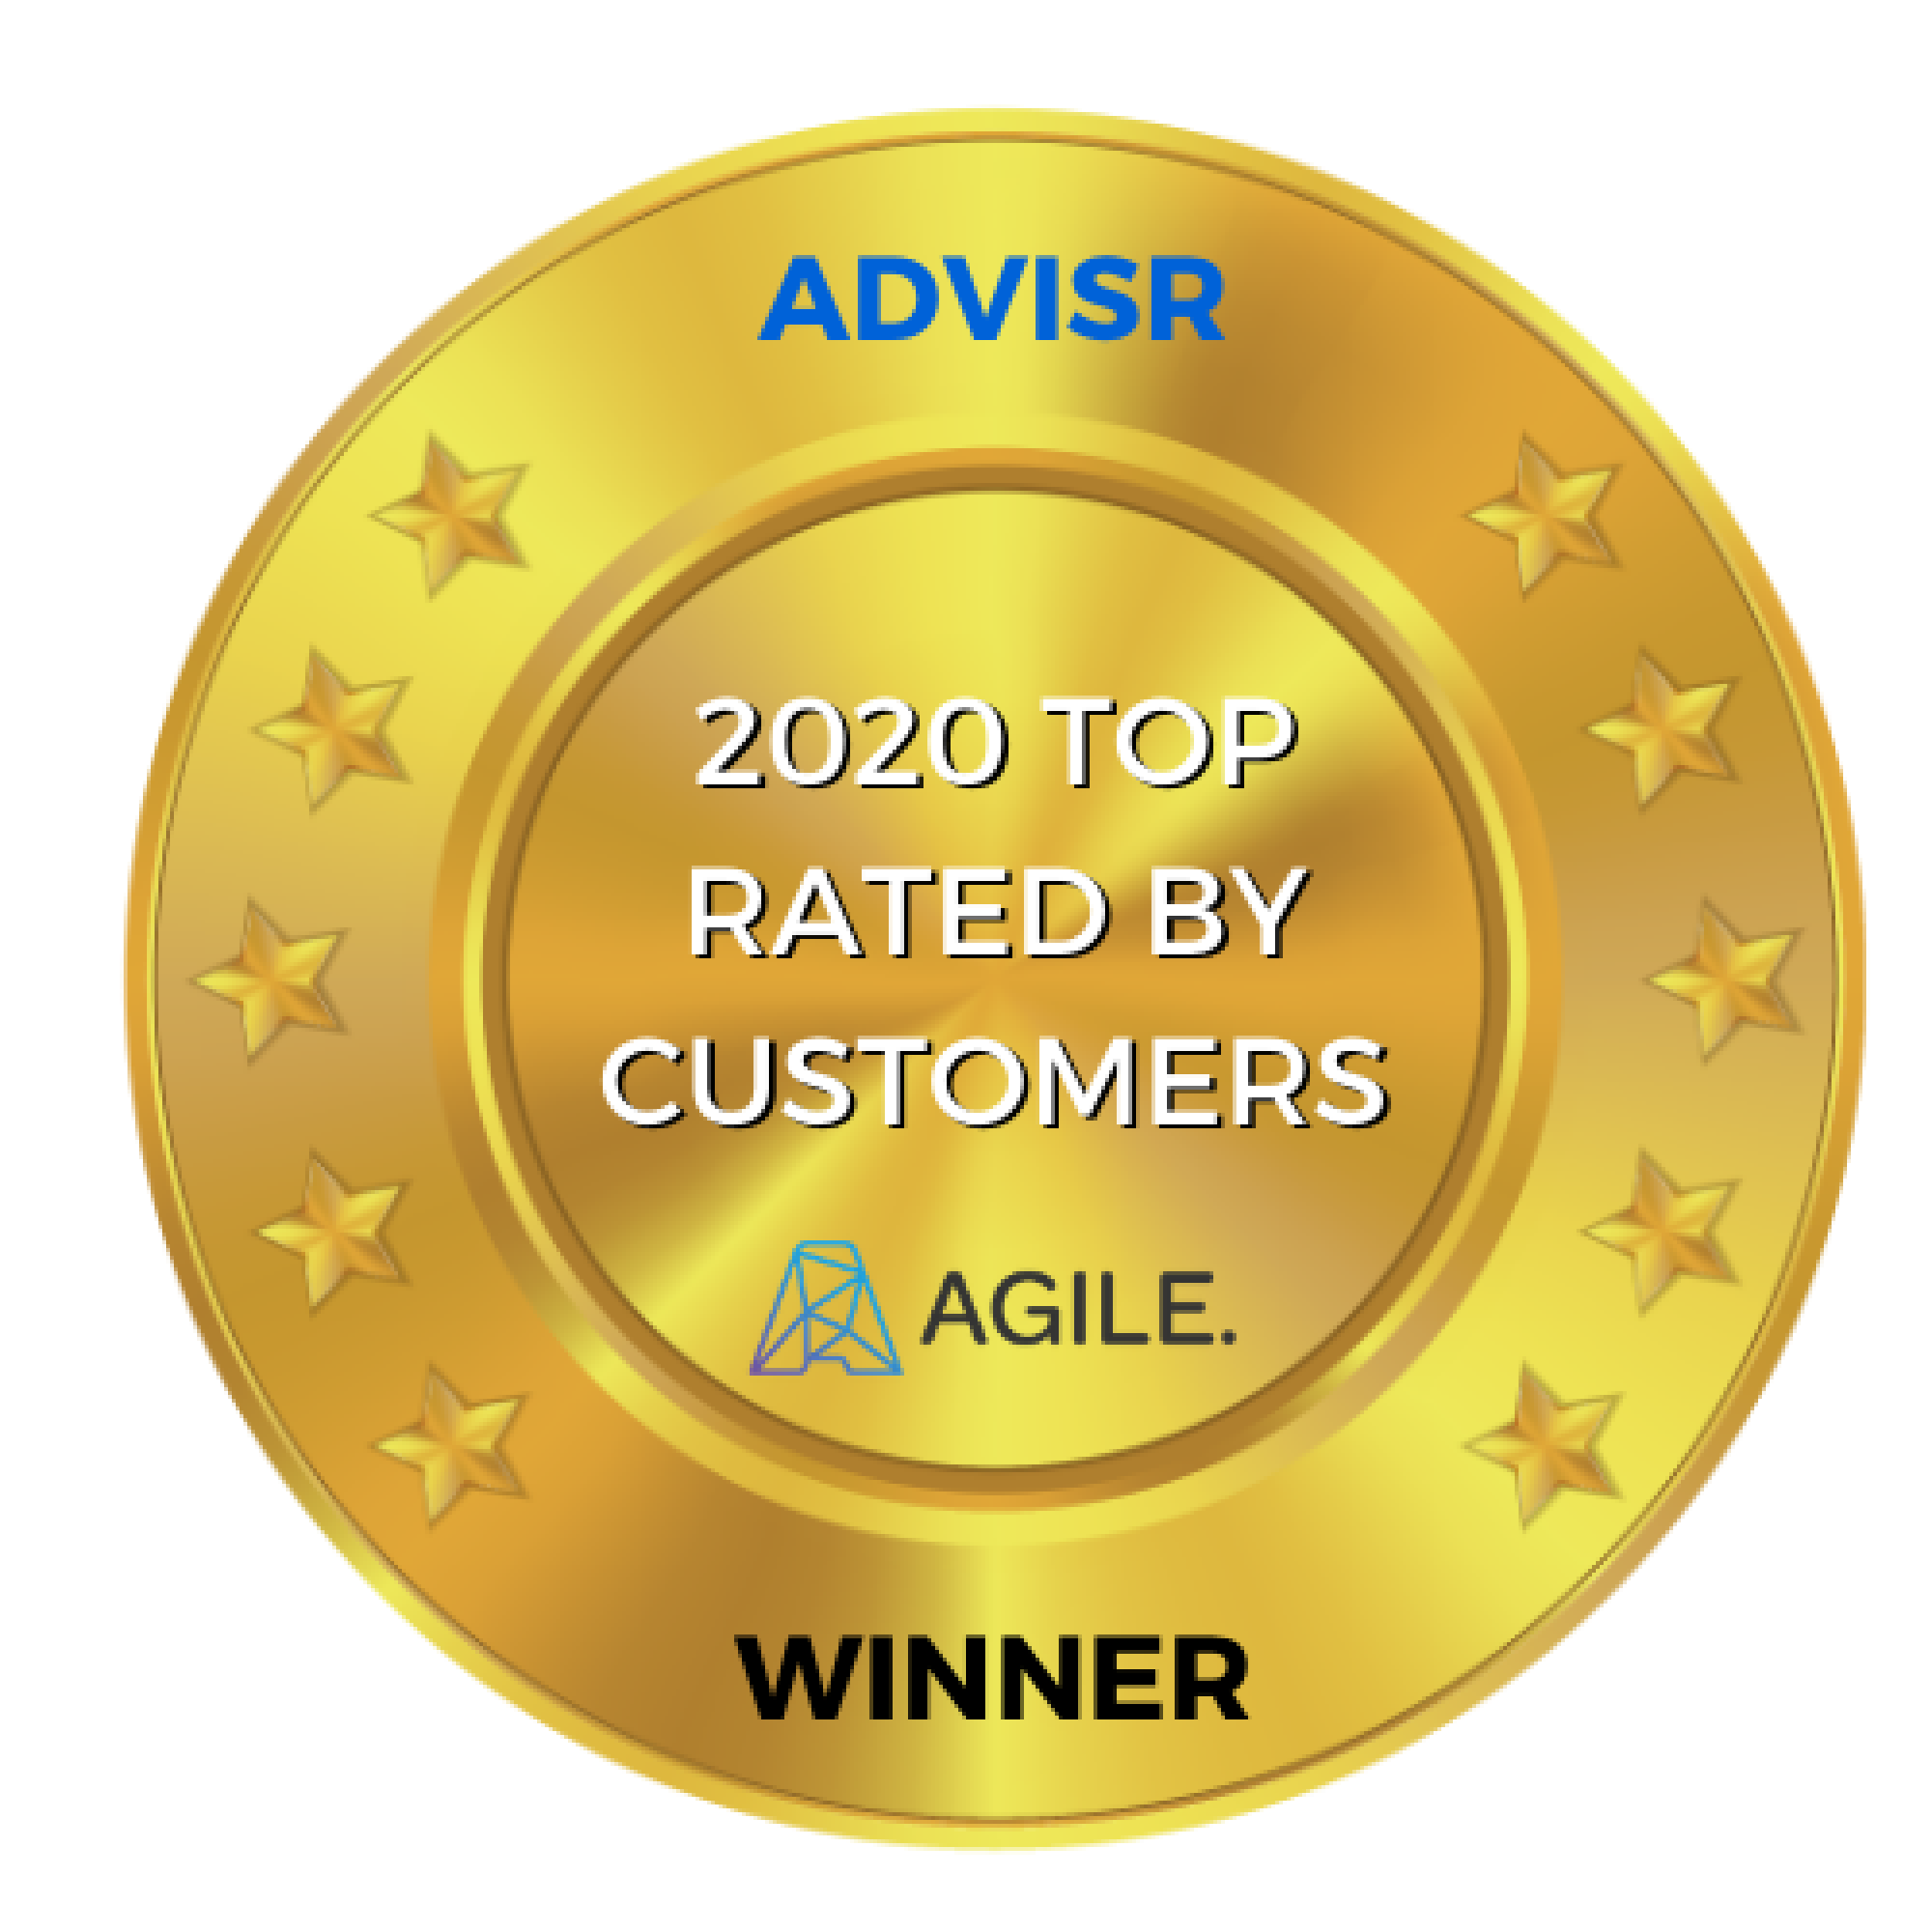 Advisr Insurance Broker Awards 2020 Winner | Top Rated by Customers